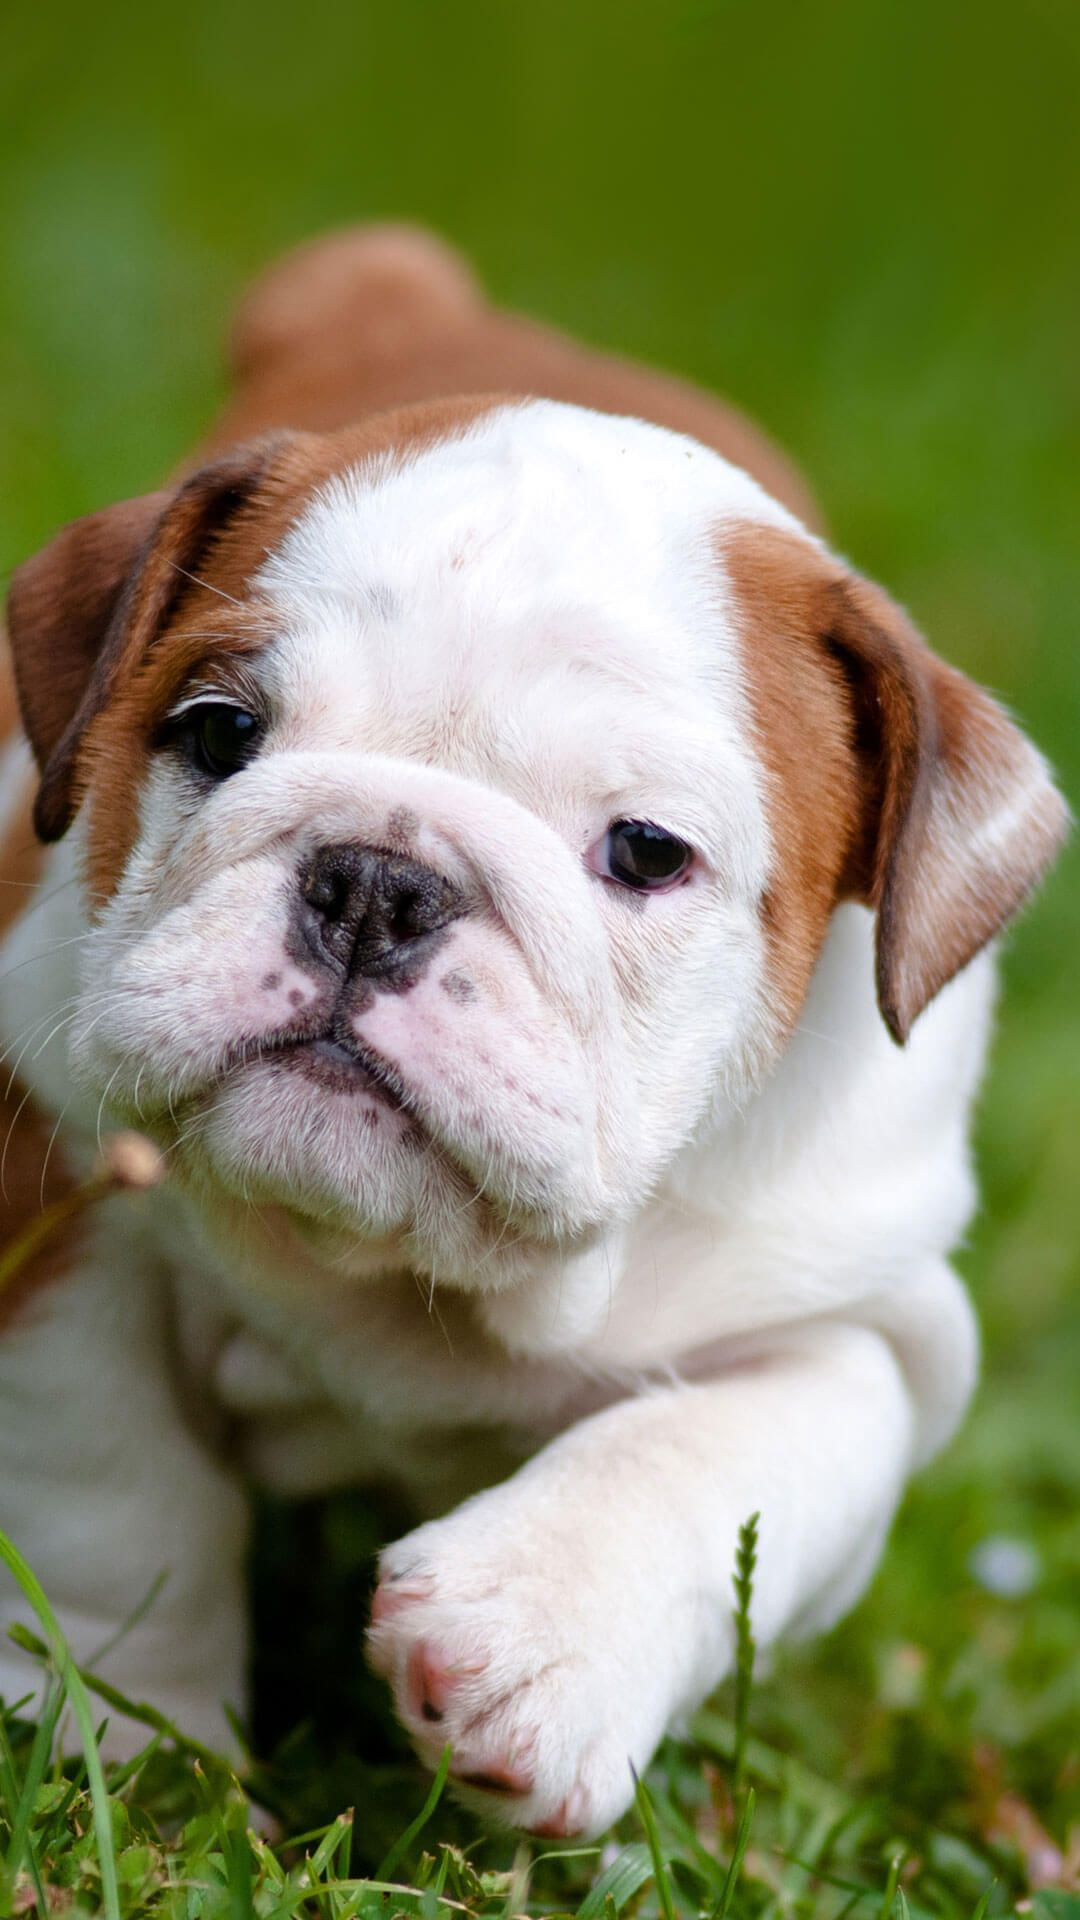 70 Cute Bulldog Puppies Wallpapers Download At Wallpaperbro